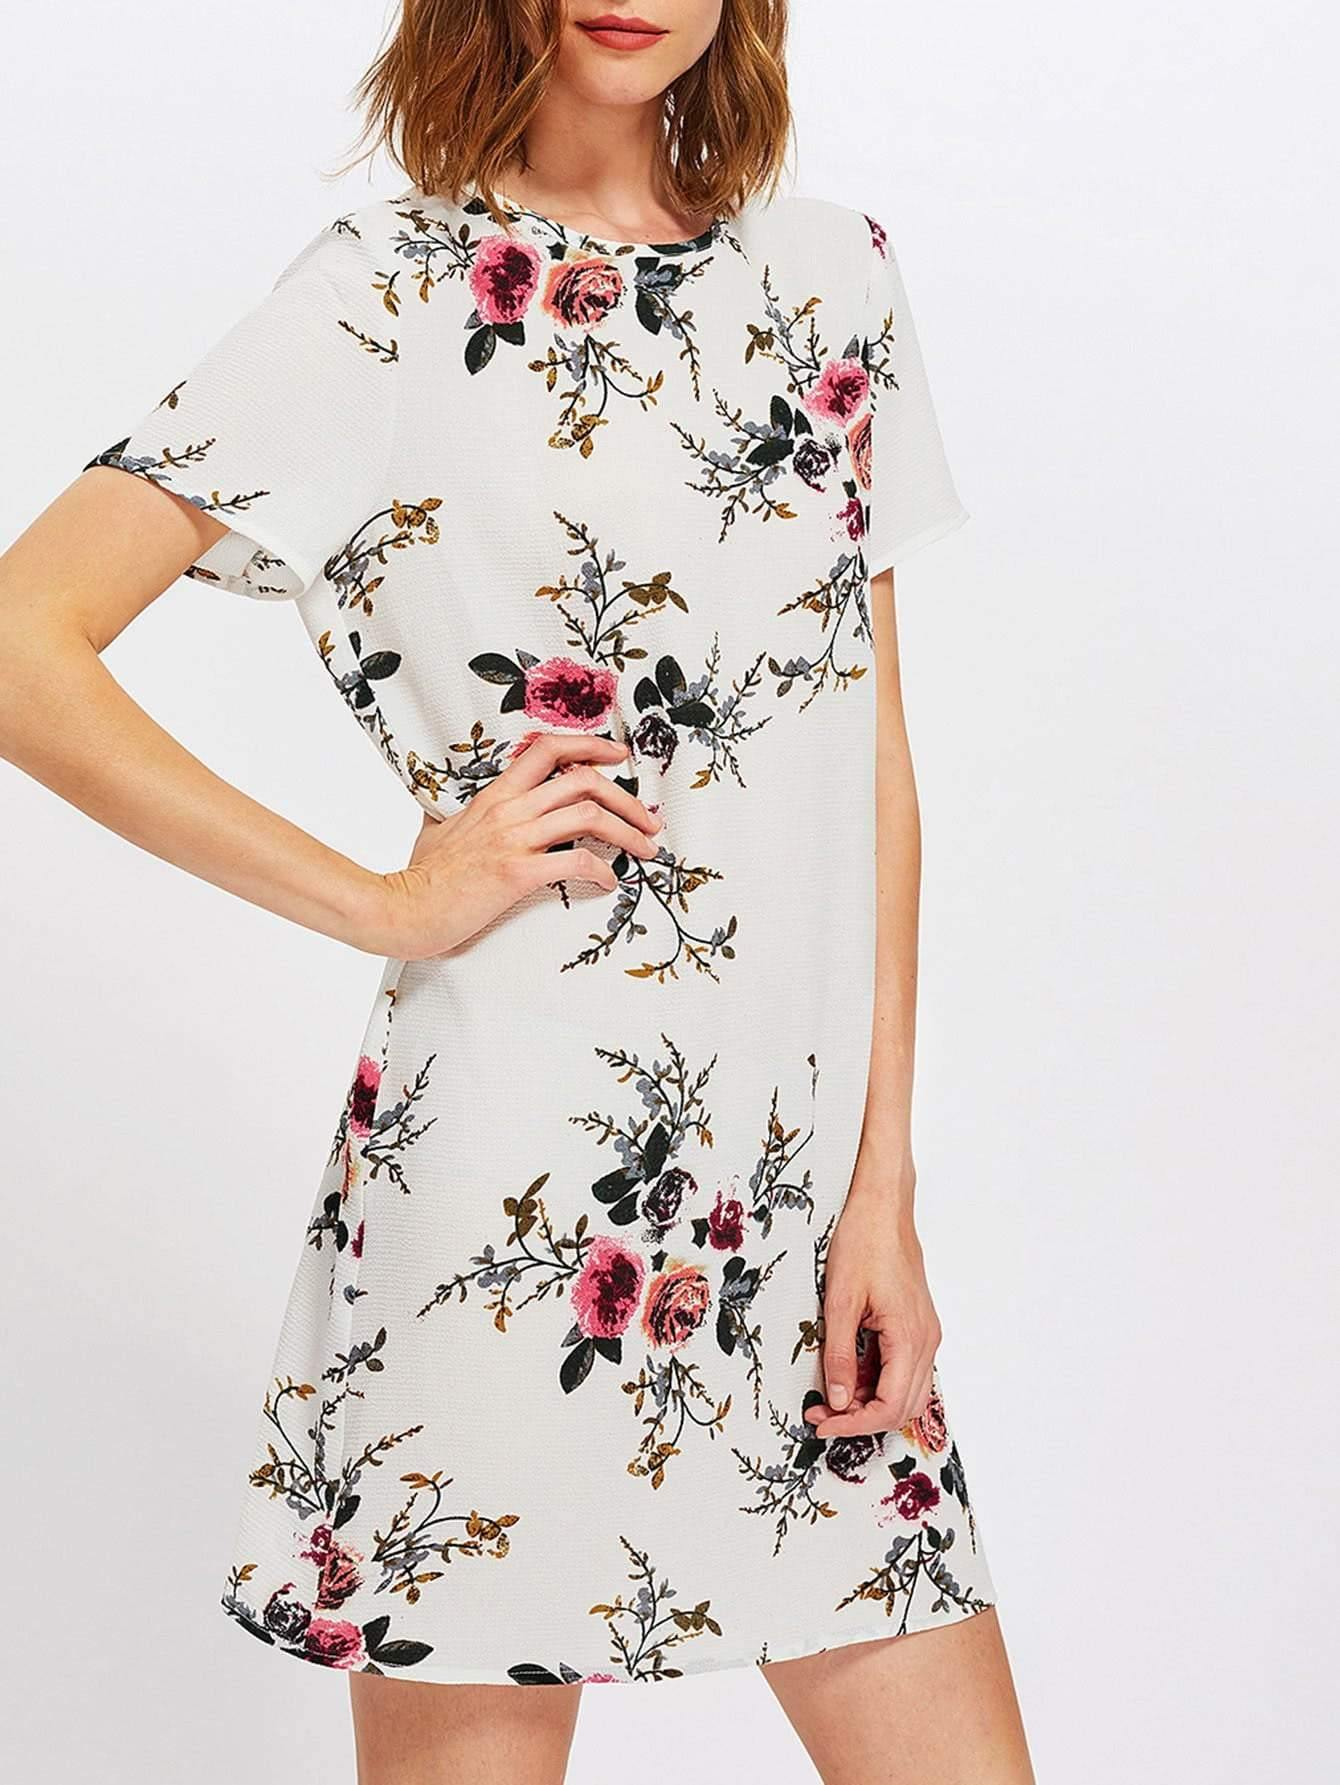 Buttoned Keyhole Back Floral Dress - zooomberg